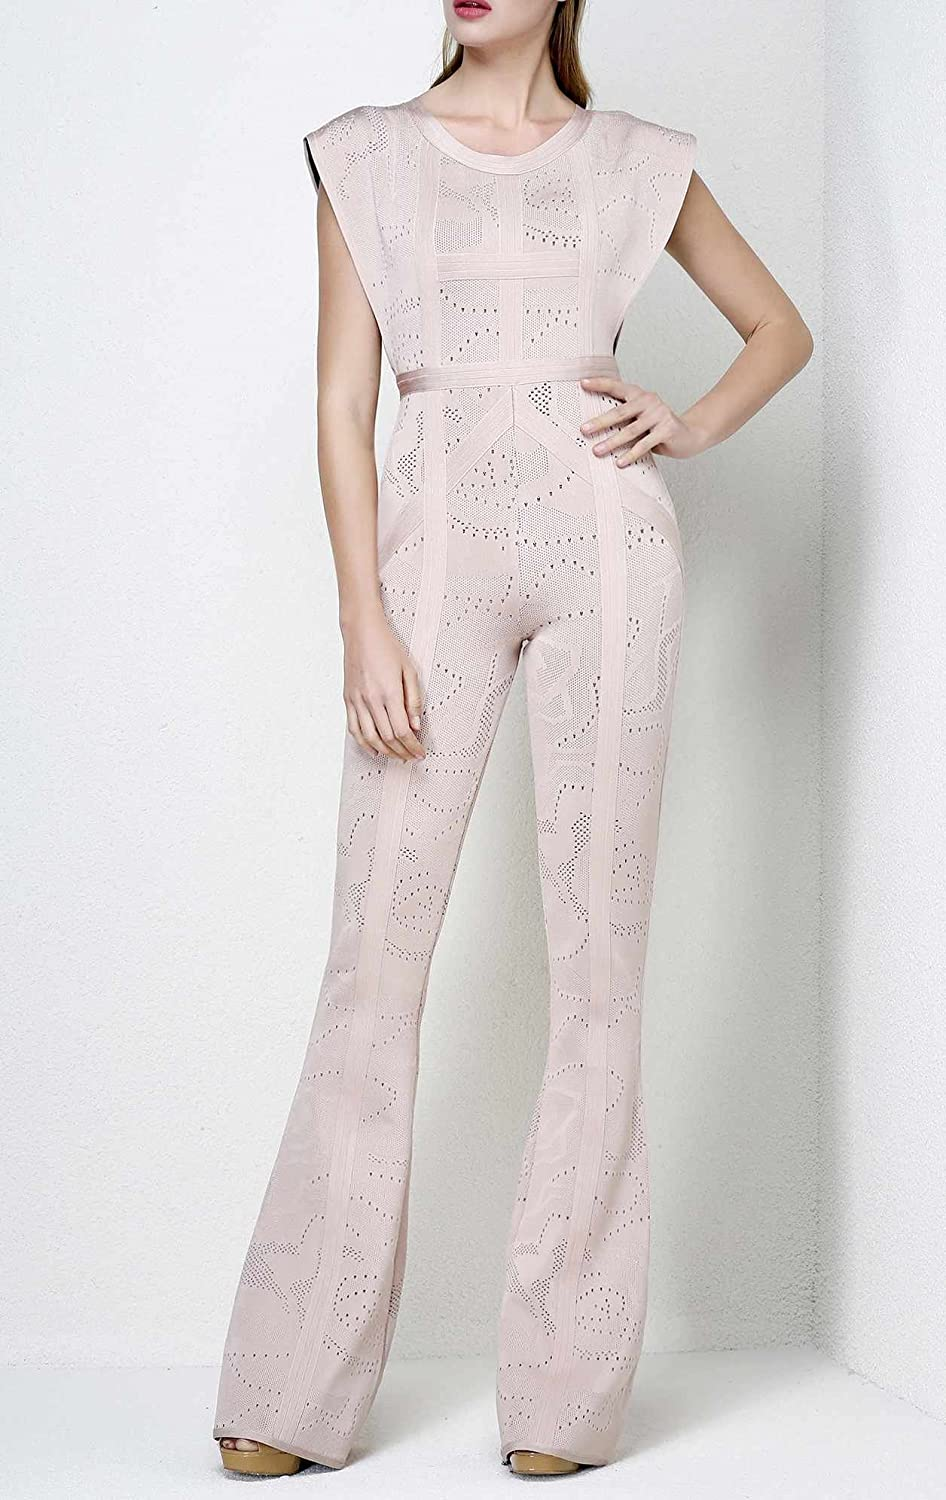 1934feeb73 Leger Babe Kasie Rose Multi-Texture Plaited Jacquard Jumpsuit at Amazon  Women s Clothing store